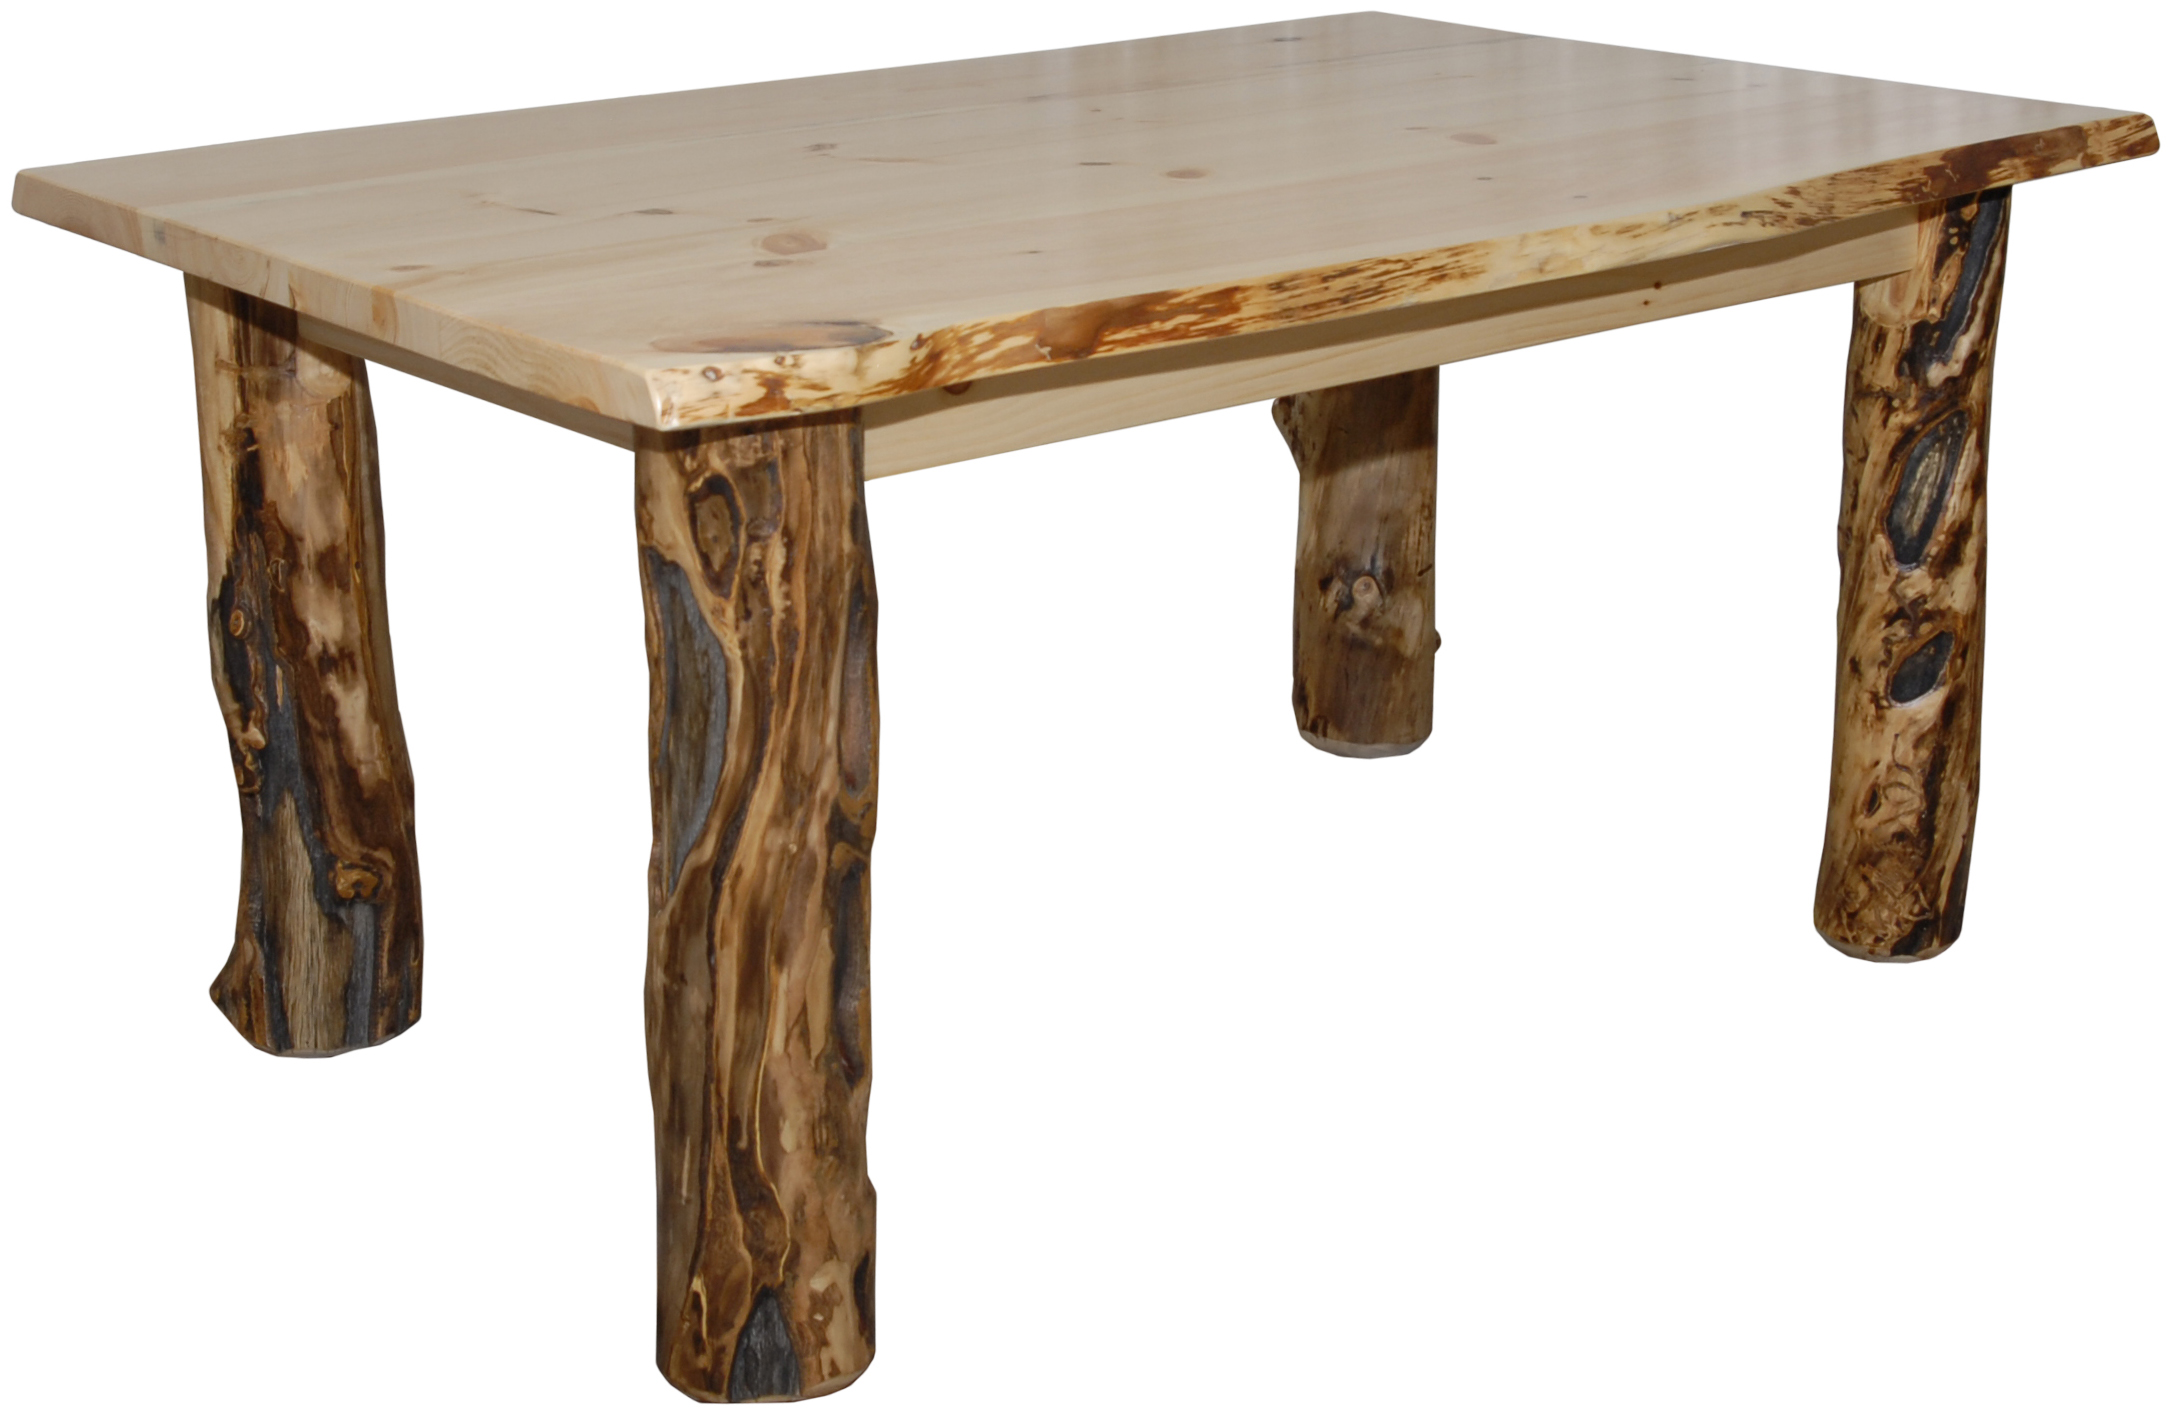 rustic aspen log dining table various sizes kitchen available round end tables home goods accent live edge farmhouse with bench seating cast iron base kohls offer codes chairside